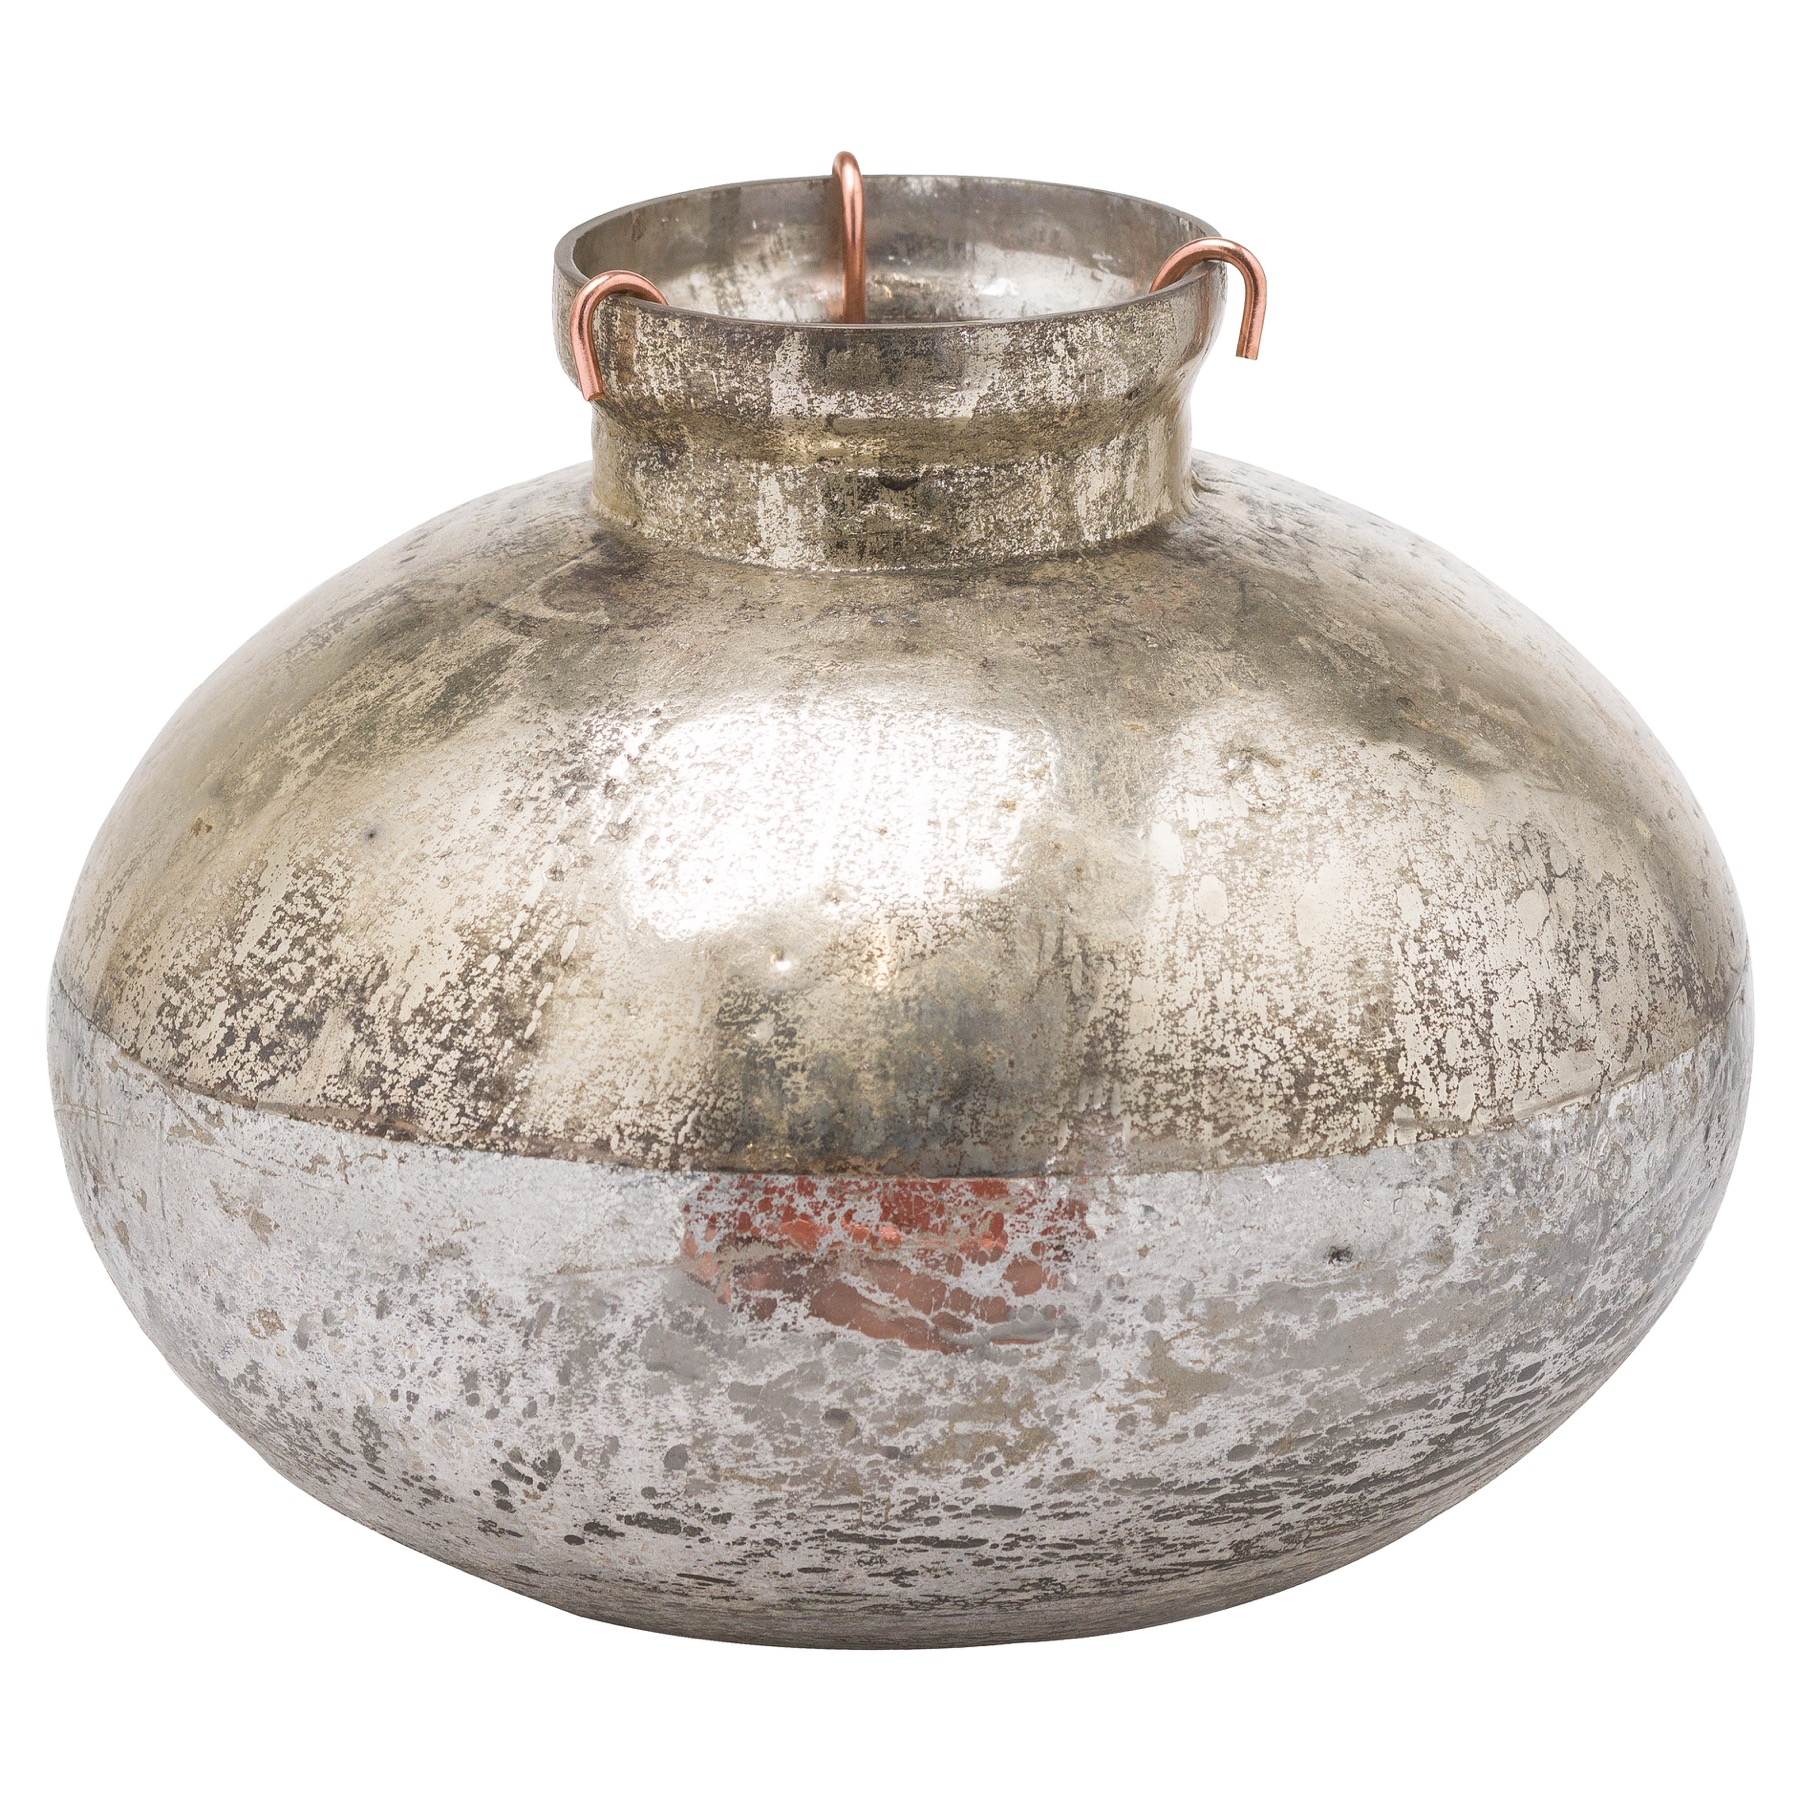 Silverlust Bulbus Candle Holder - Image 1